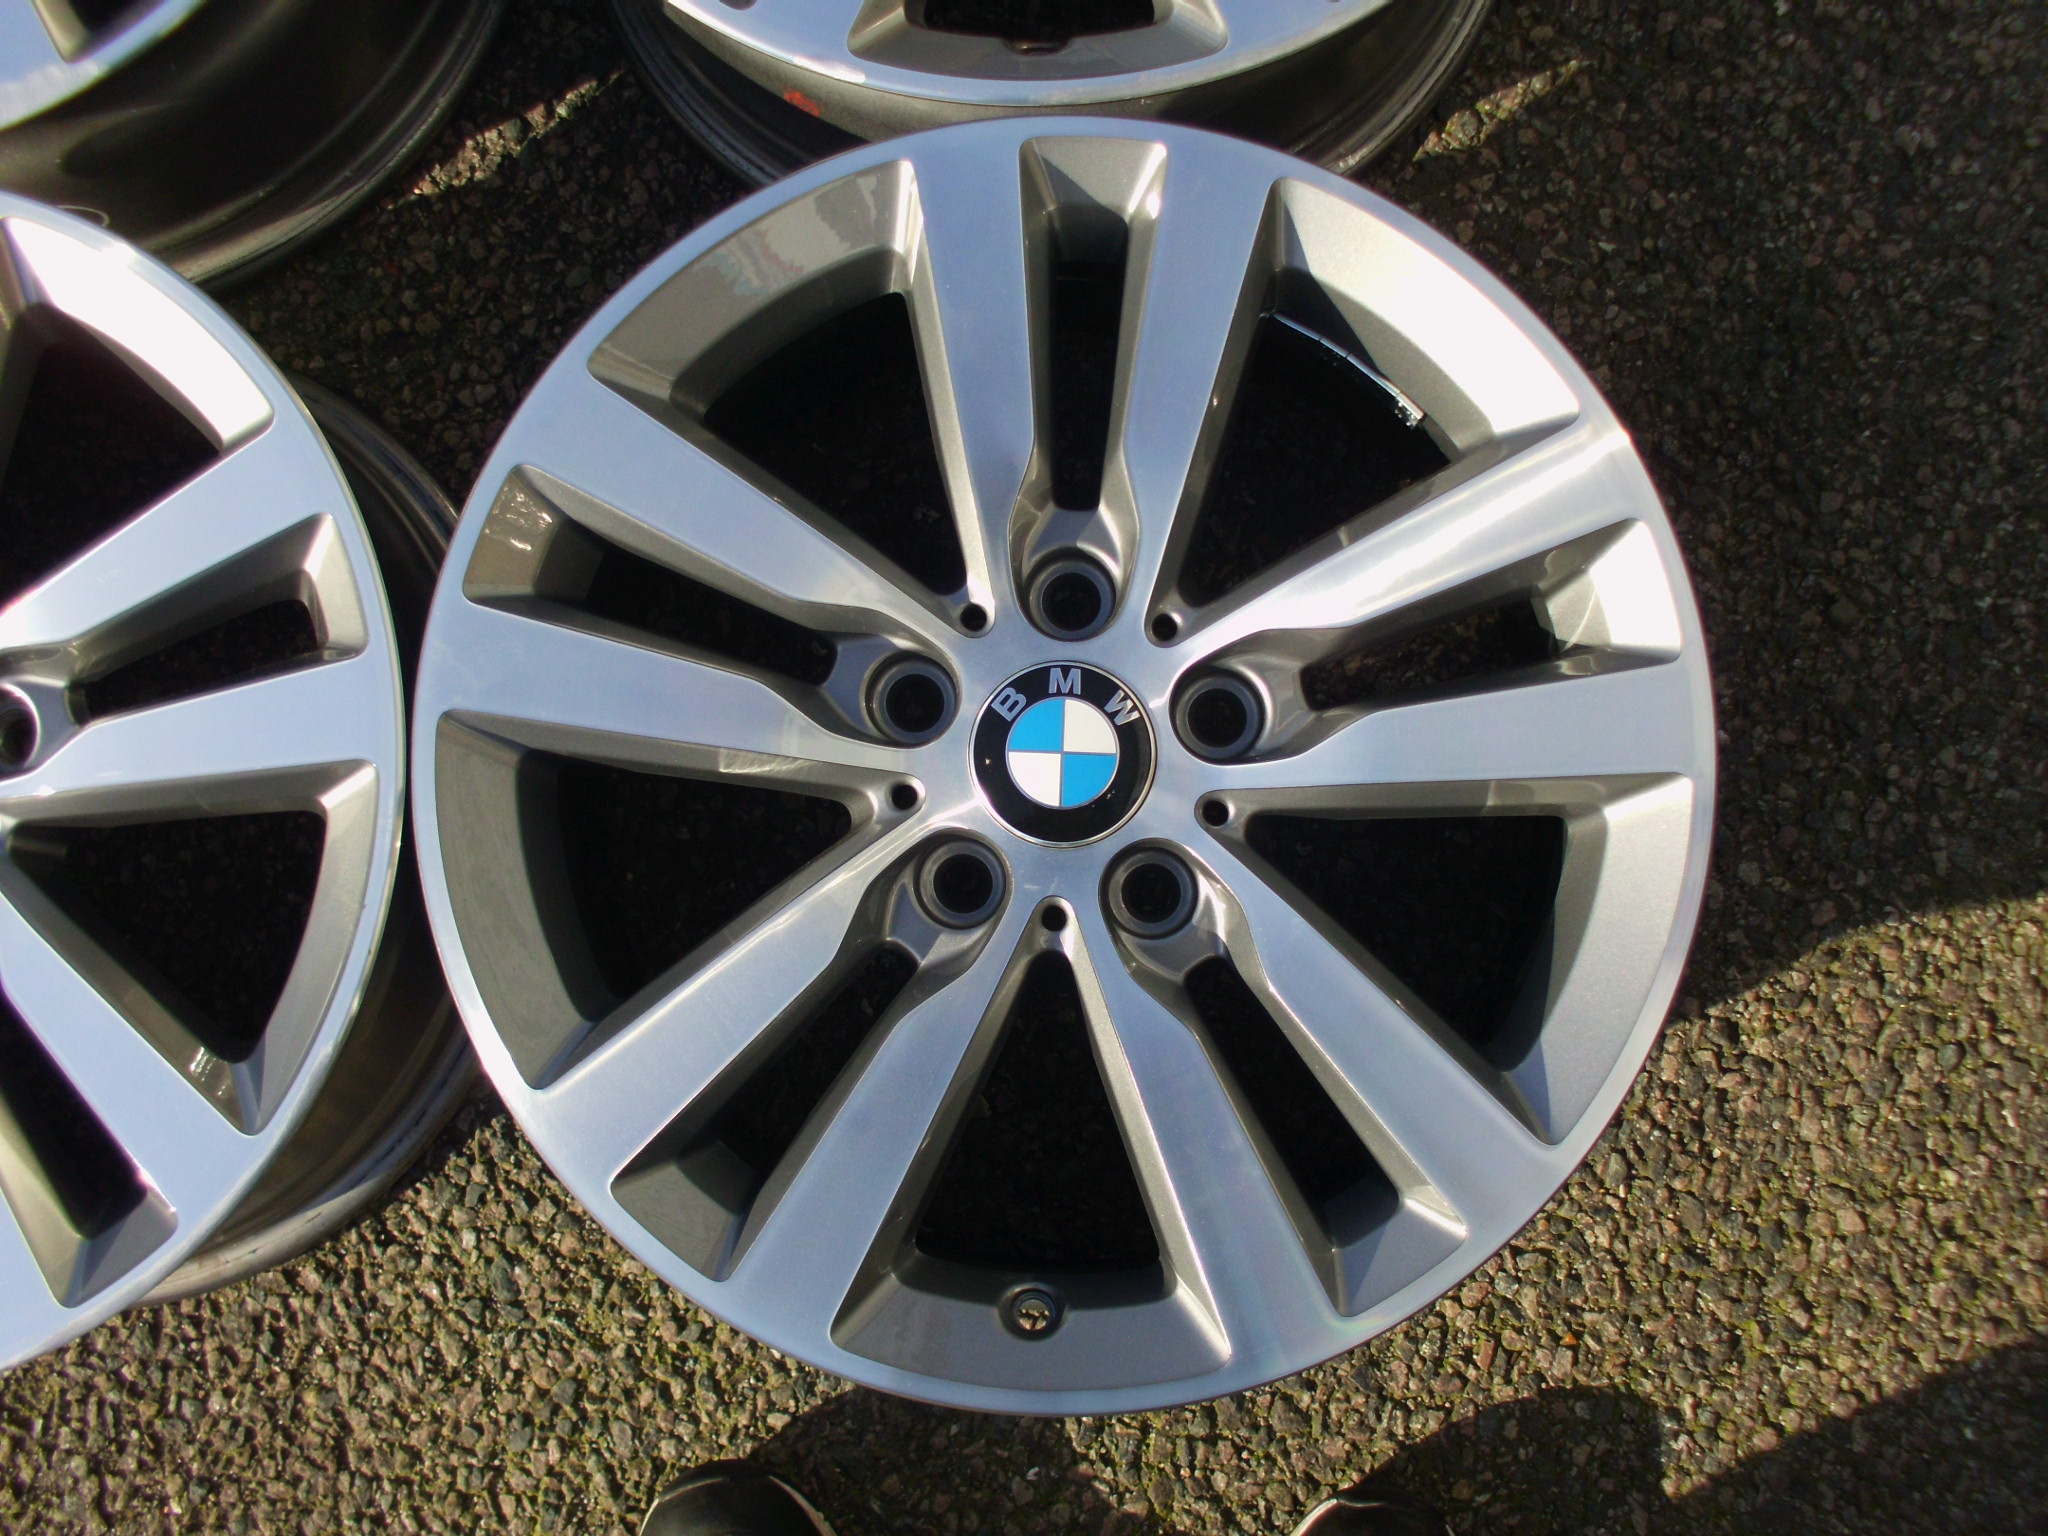 "USED 17"" GENUINE BMW STYLE 655 DOUBLE SPOKE ALLOY WHEELS,GOOD CONDITION, IN LIGHT GUNMETAL WITH POLISHED FACE"